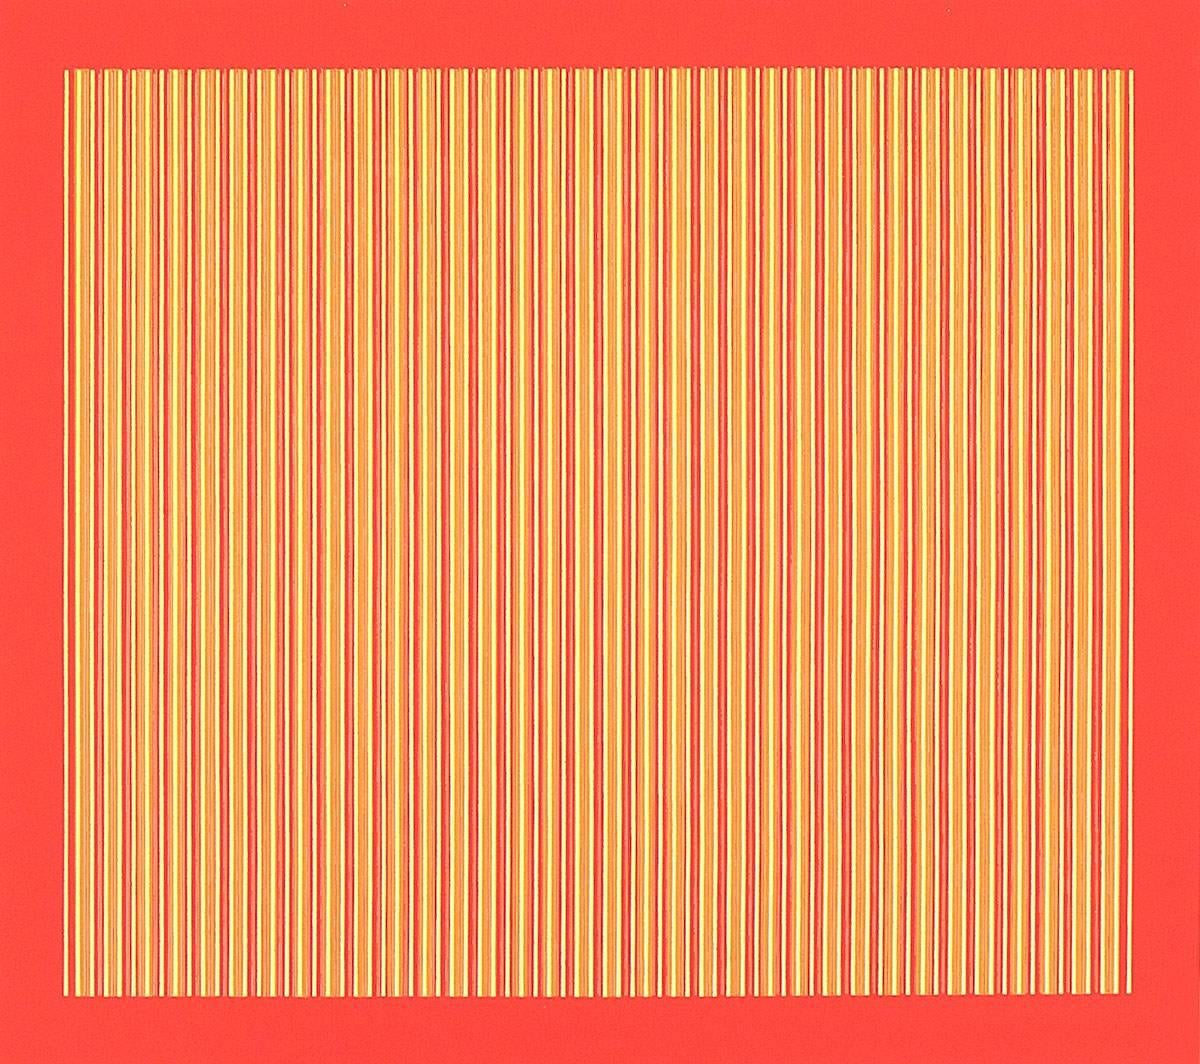 Agam 1971 Kinetic Op Art Print signed and dated